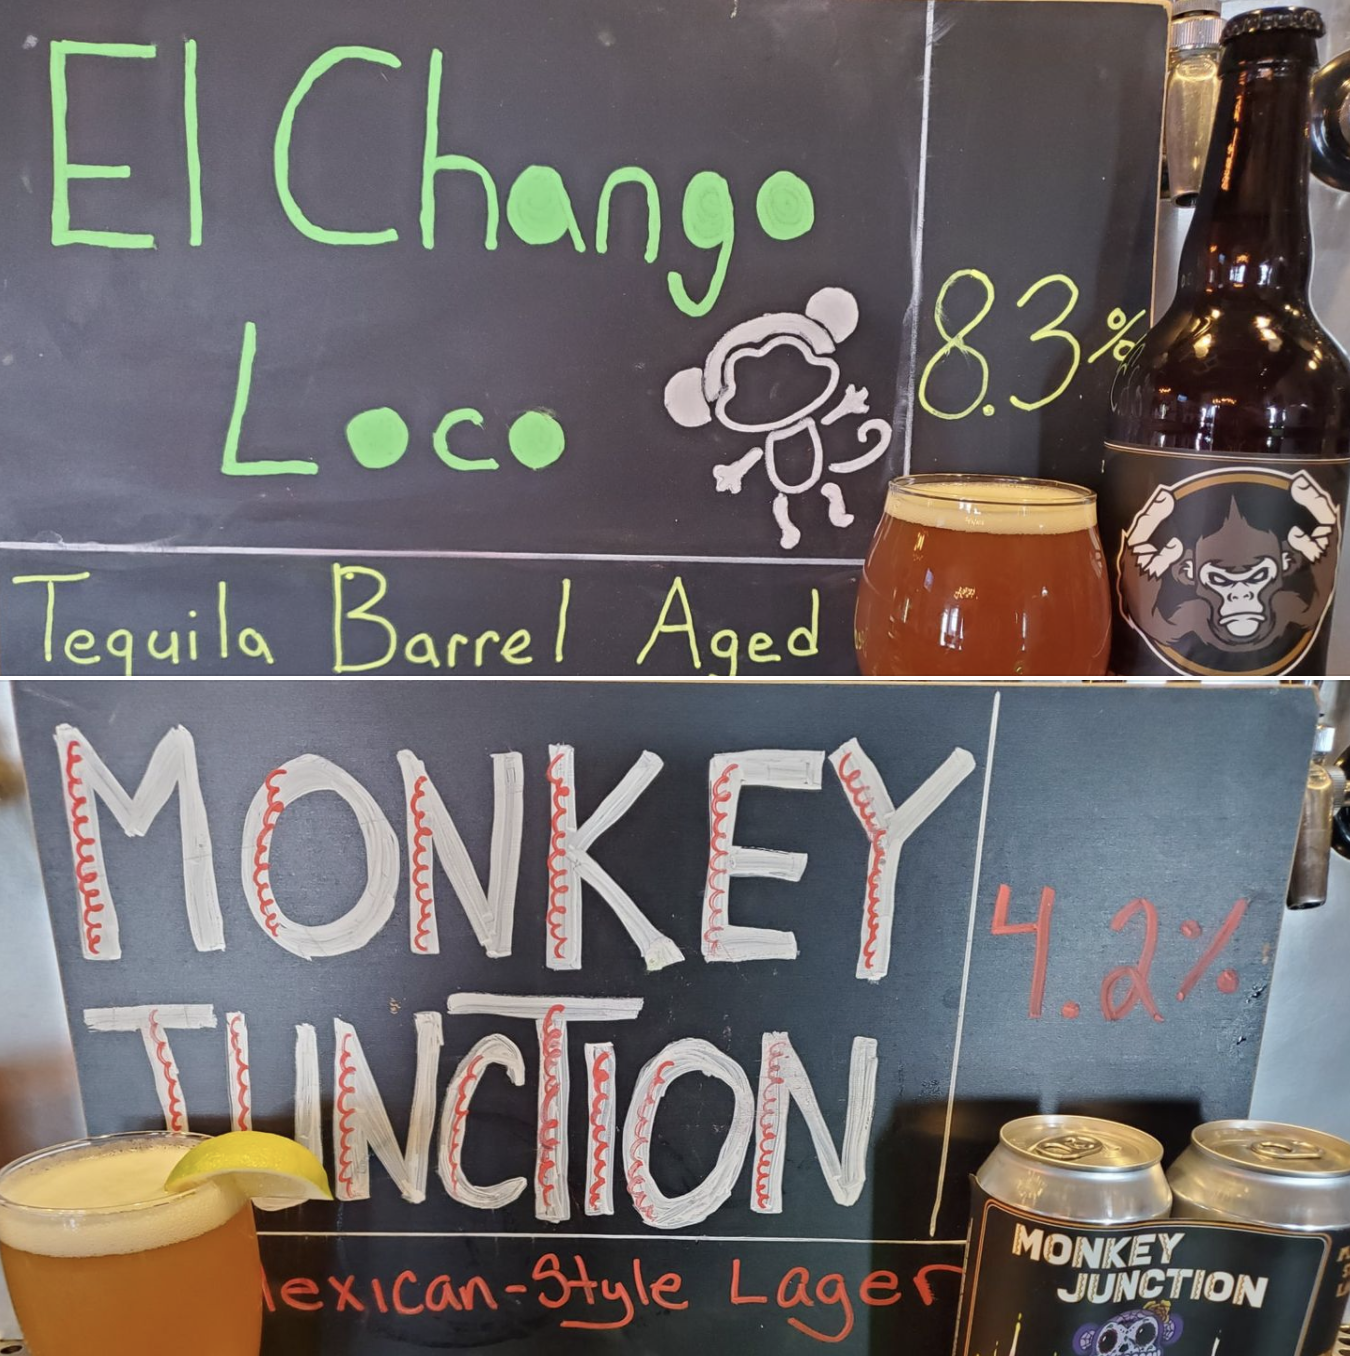 Graphic featuring Monkey Junction, El Chango Loco, and Tone Capone's tacos